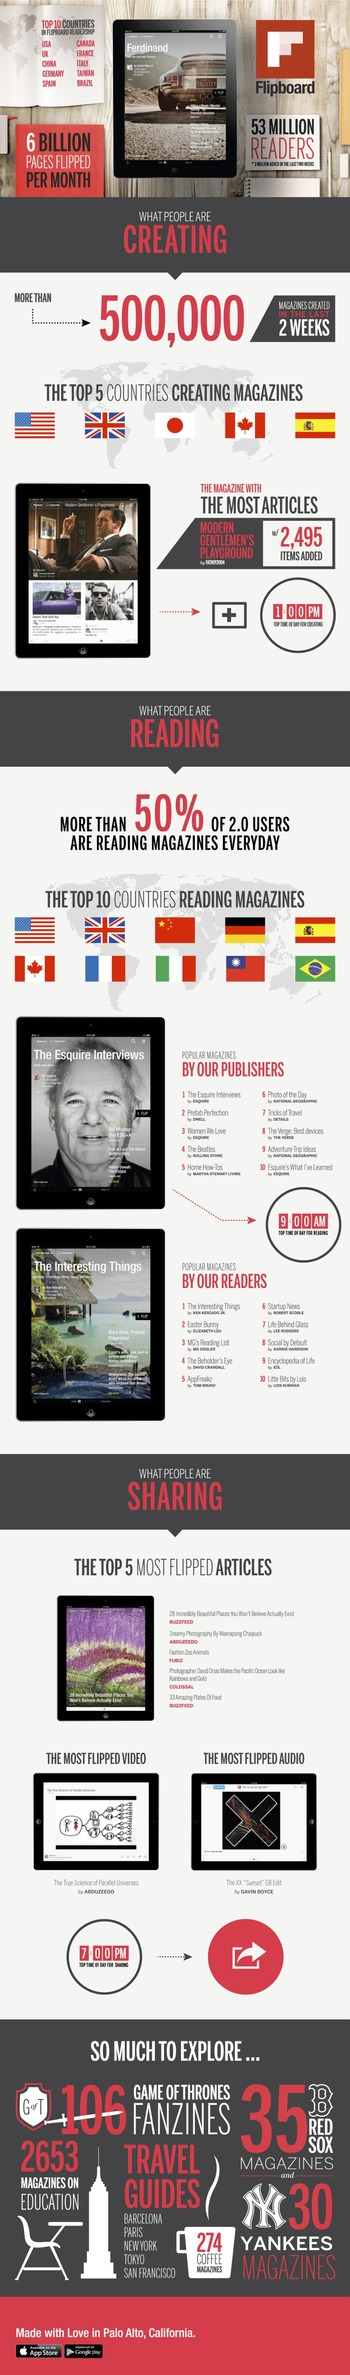 500,000 Flipboard magazines created in 2 weeks (Infographic)   Business in a Social Media World   Scoop.it